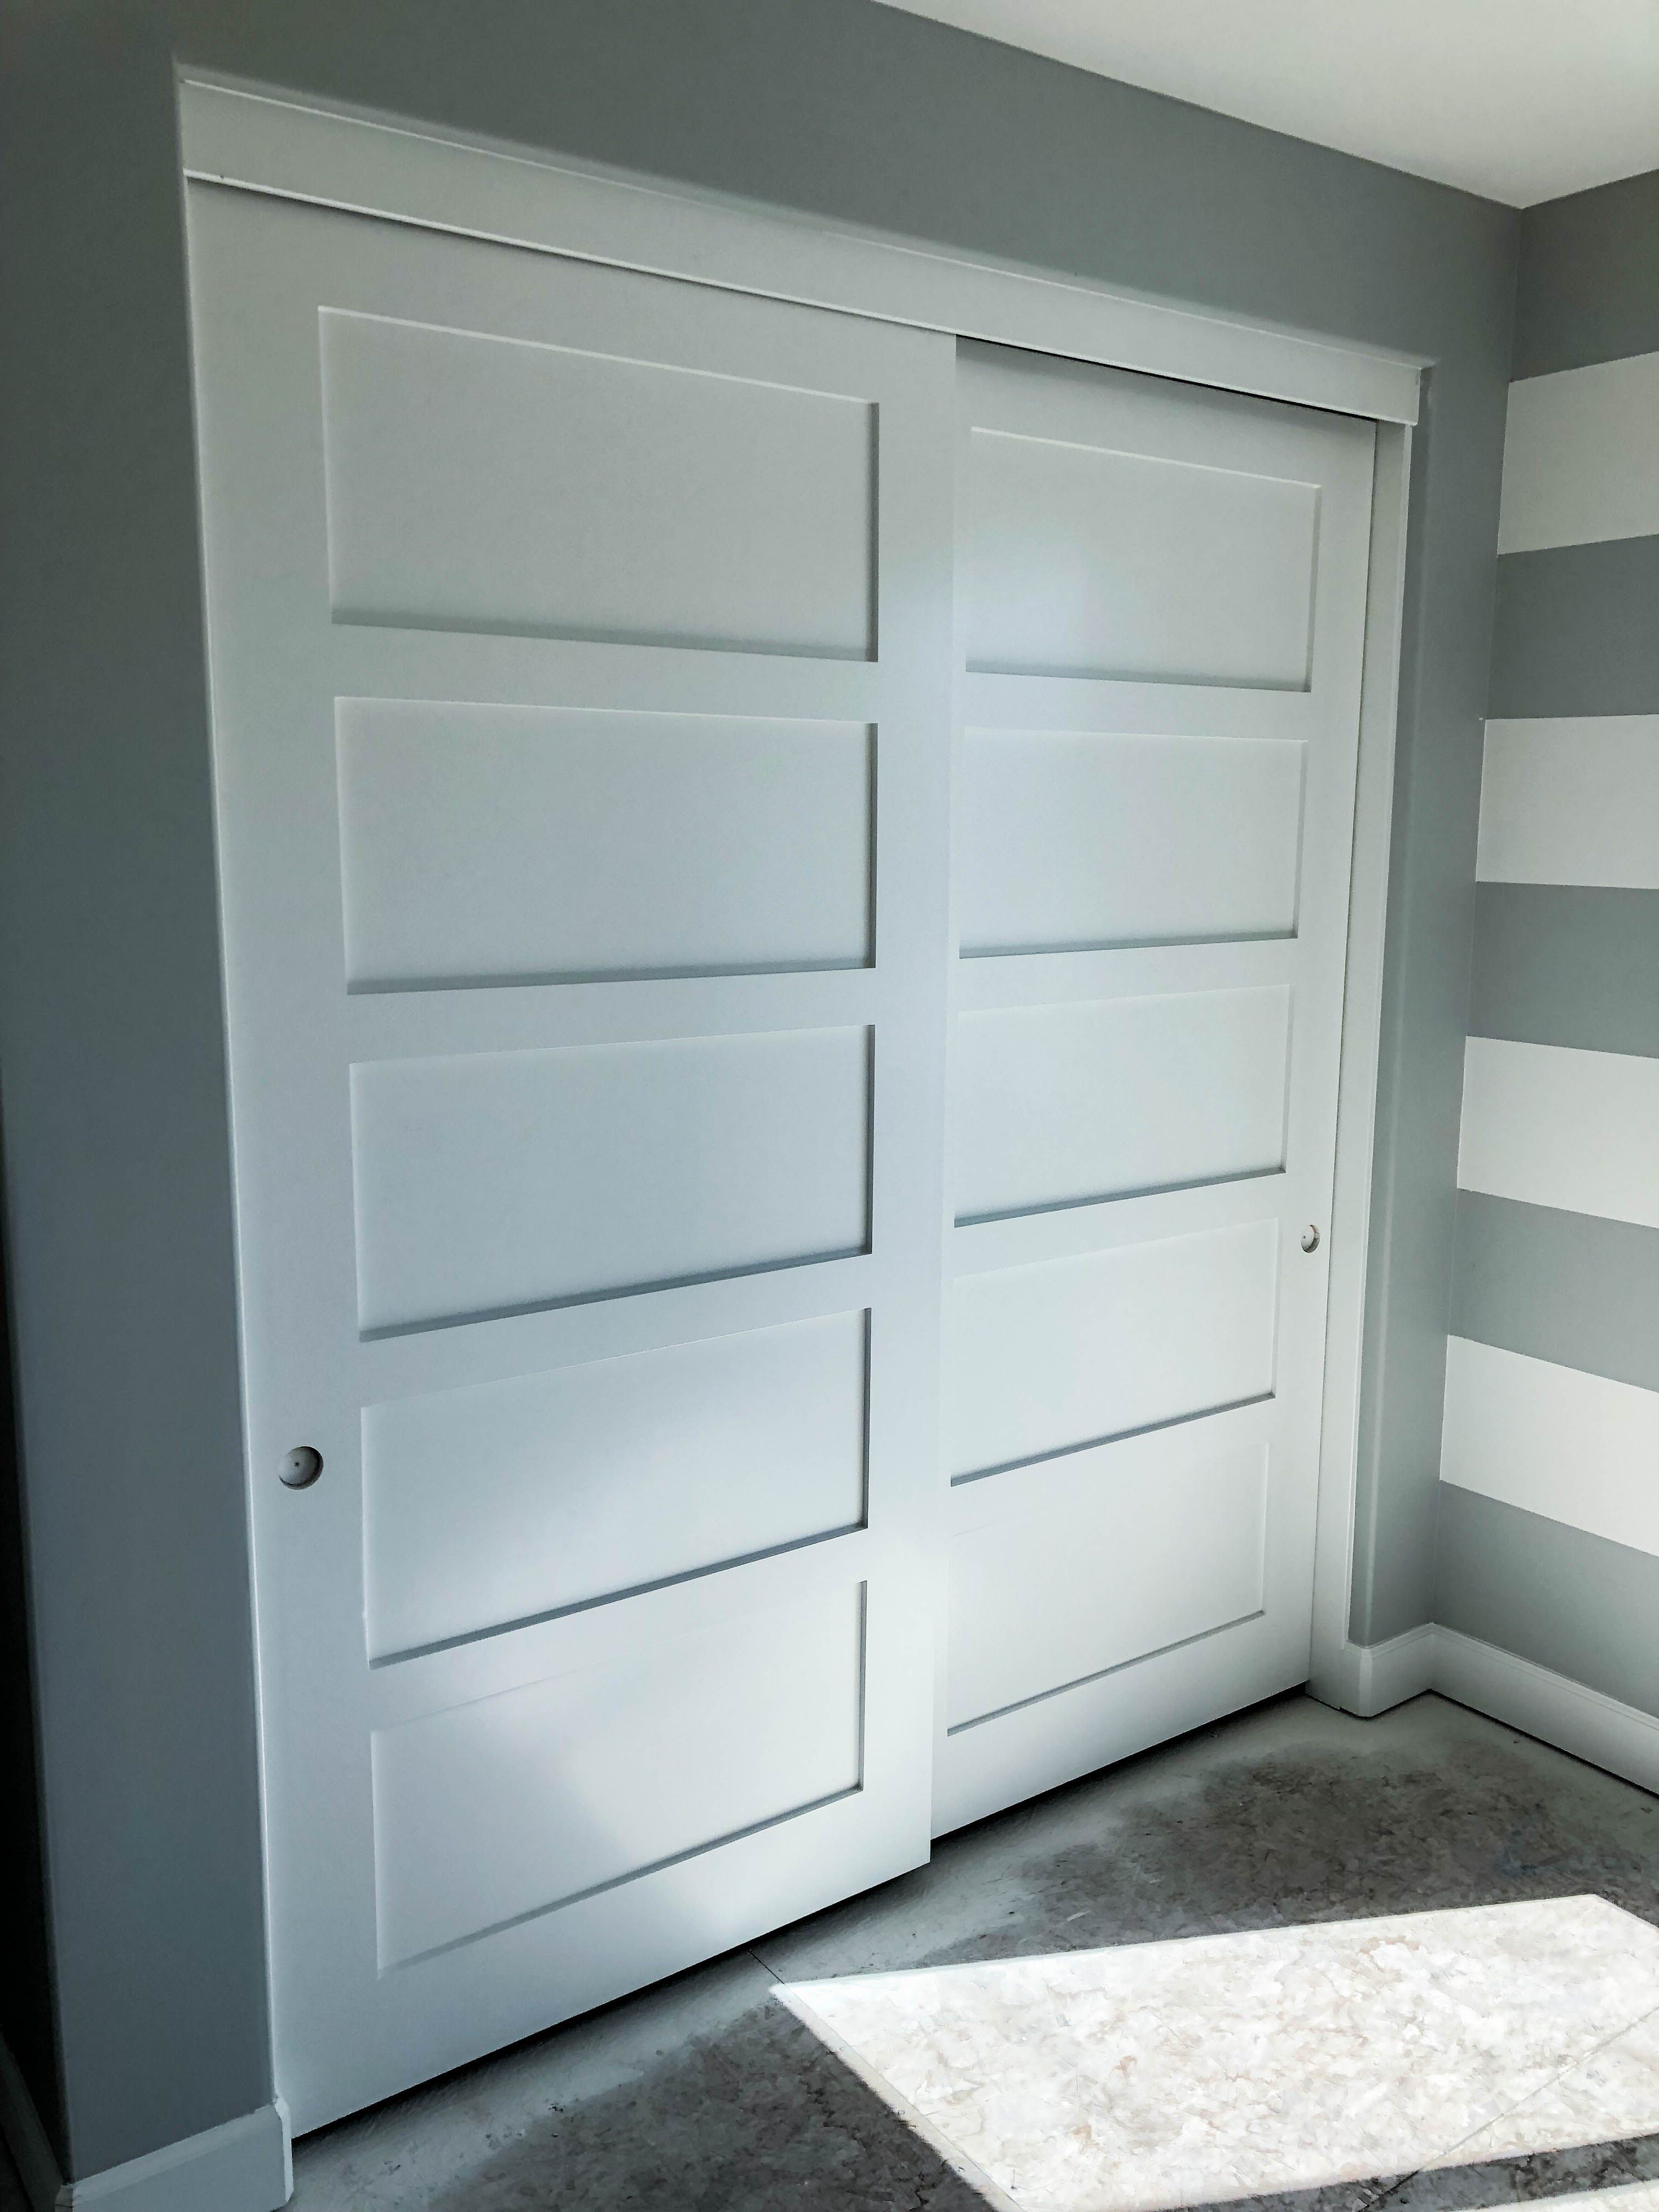 Take A Look At These Brand New Closet Doors That We Just Installed In Huntington Beach California On Sliding Closet Doors Wood Closet Doors Closet Doors